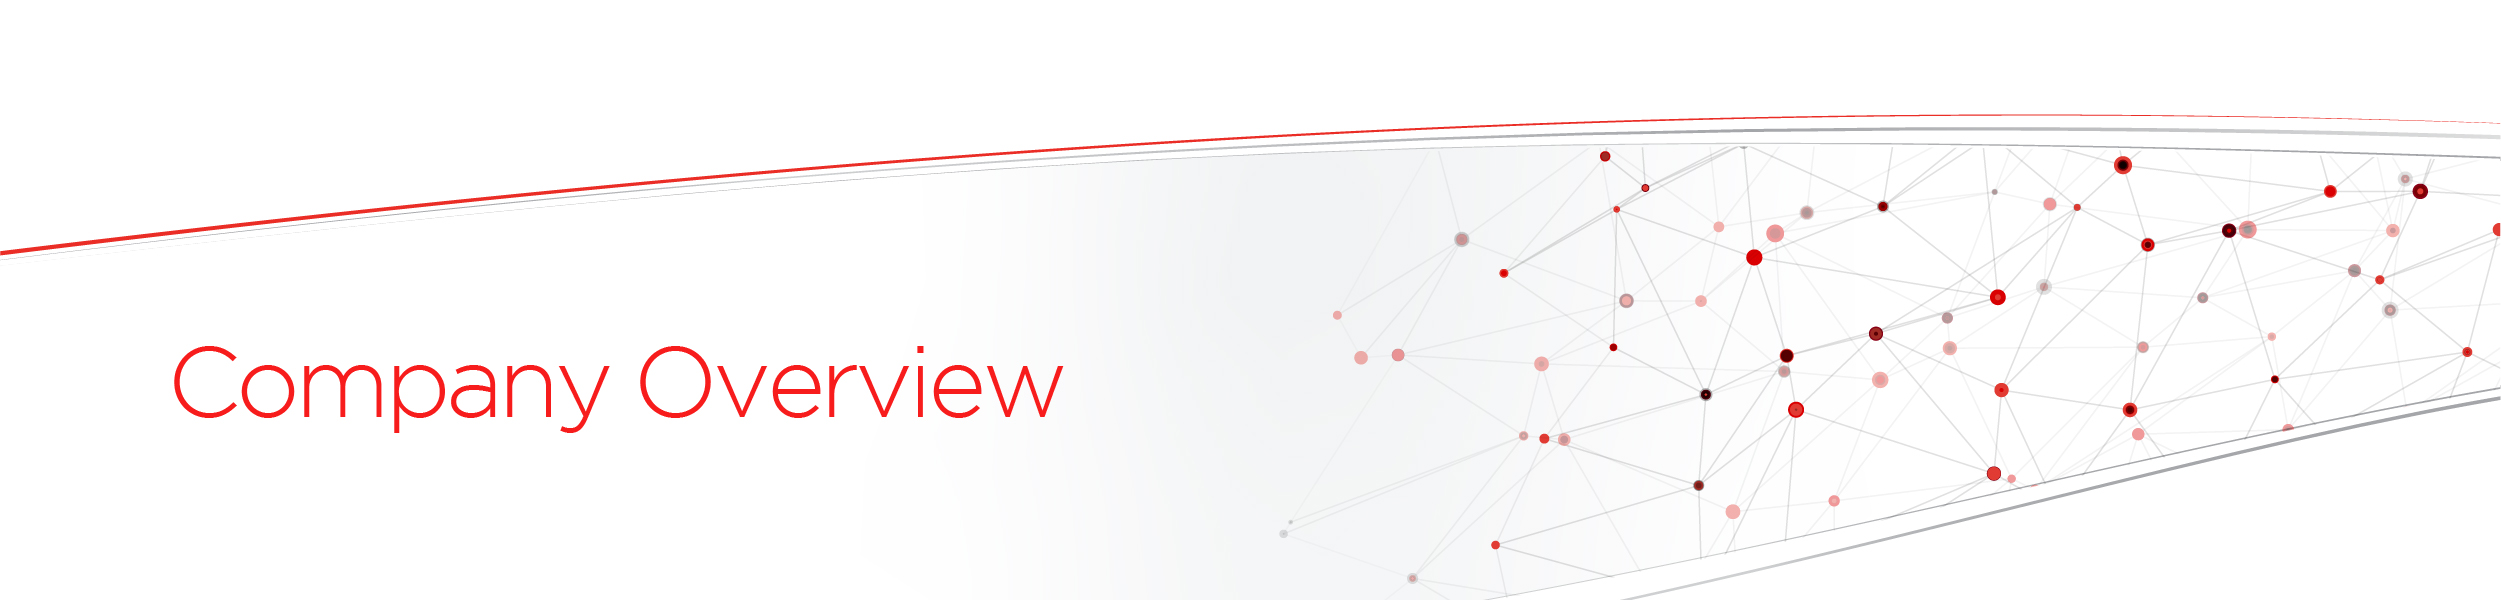 eie company overview